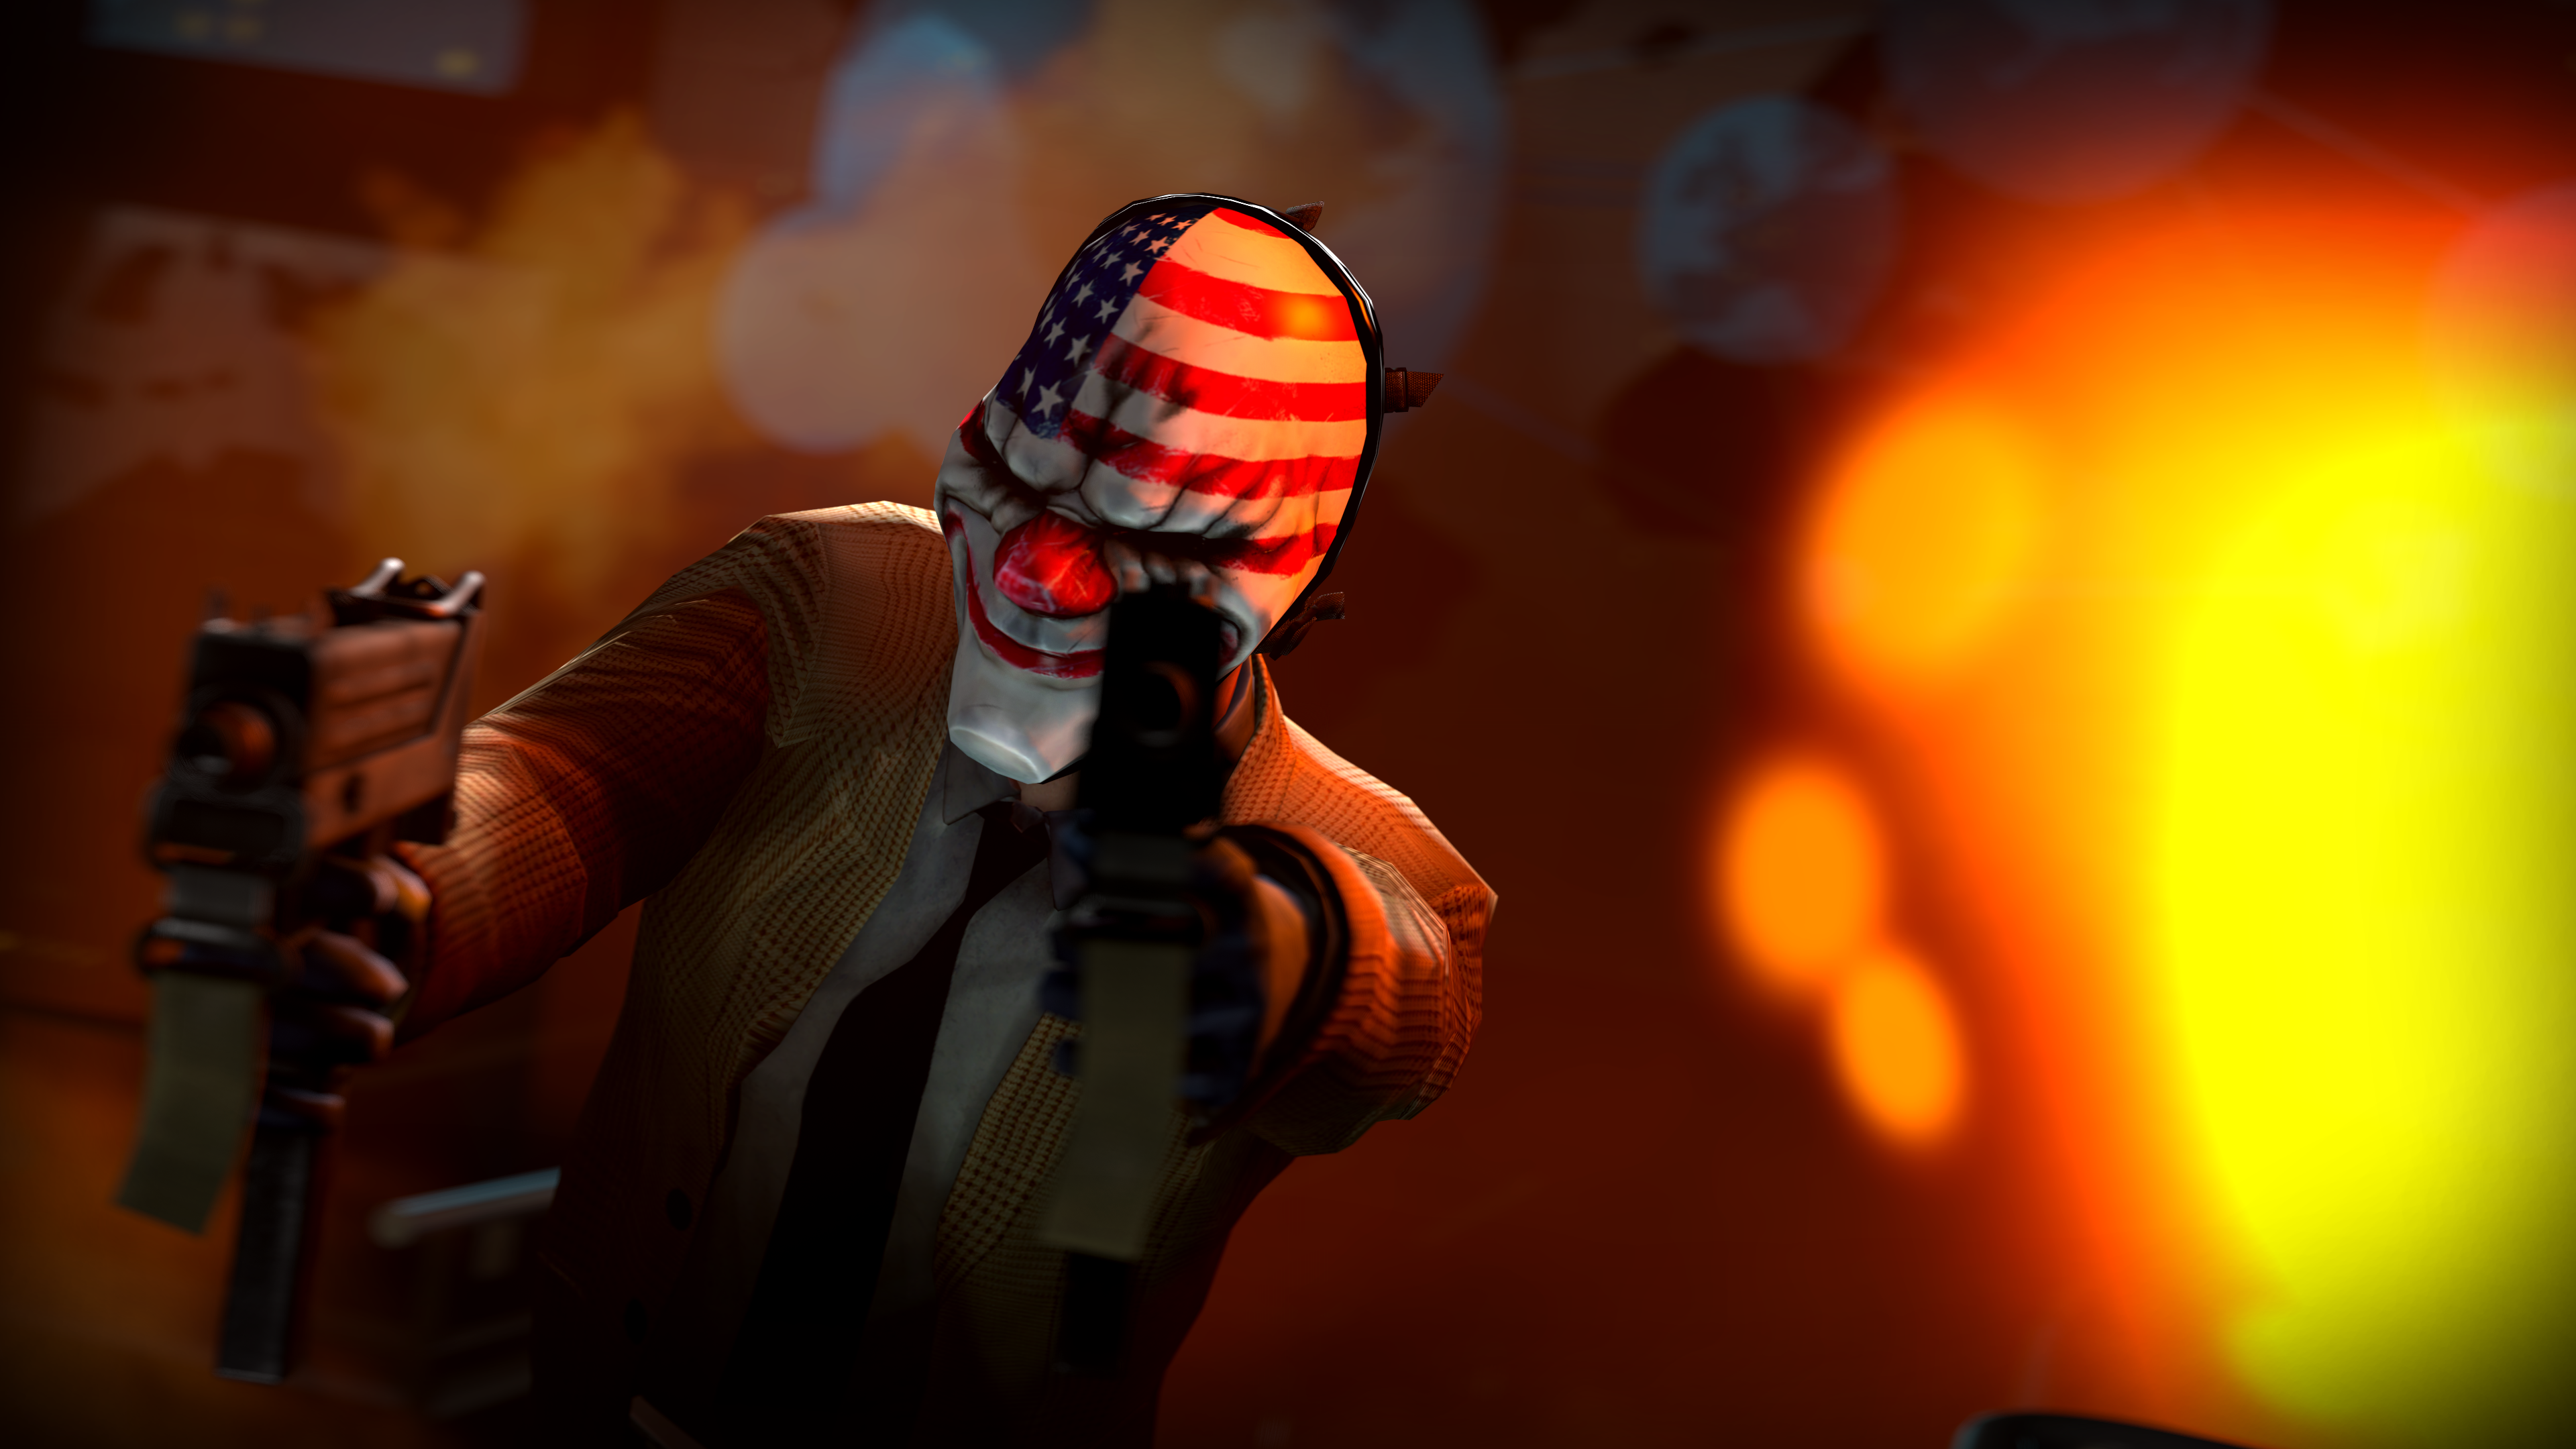 payday wallpaper wolf